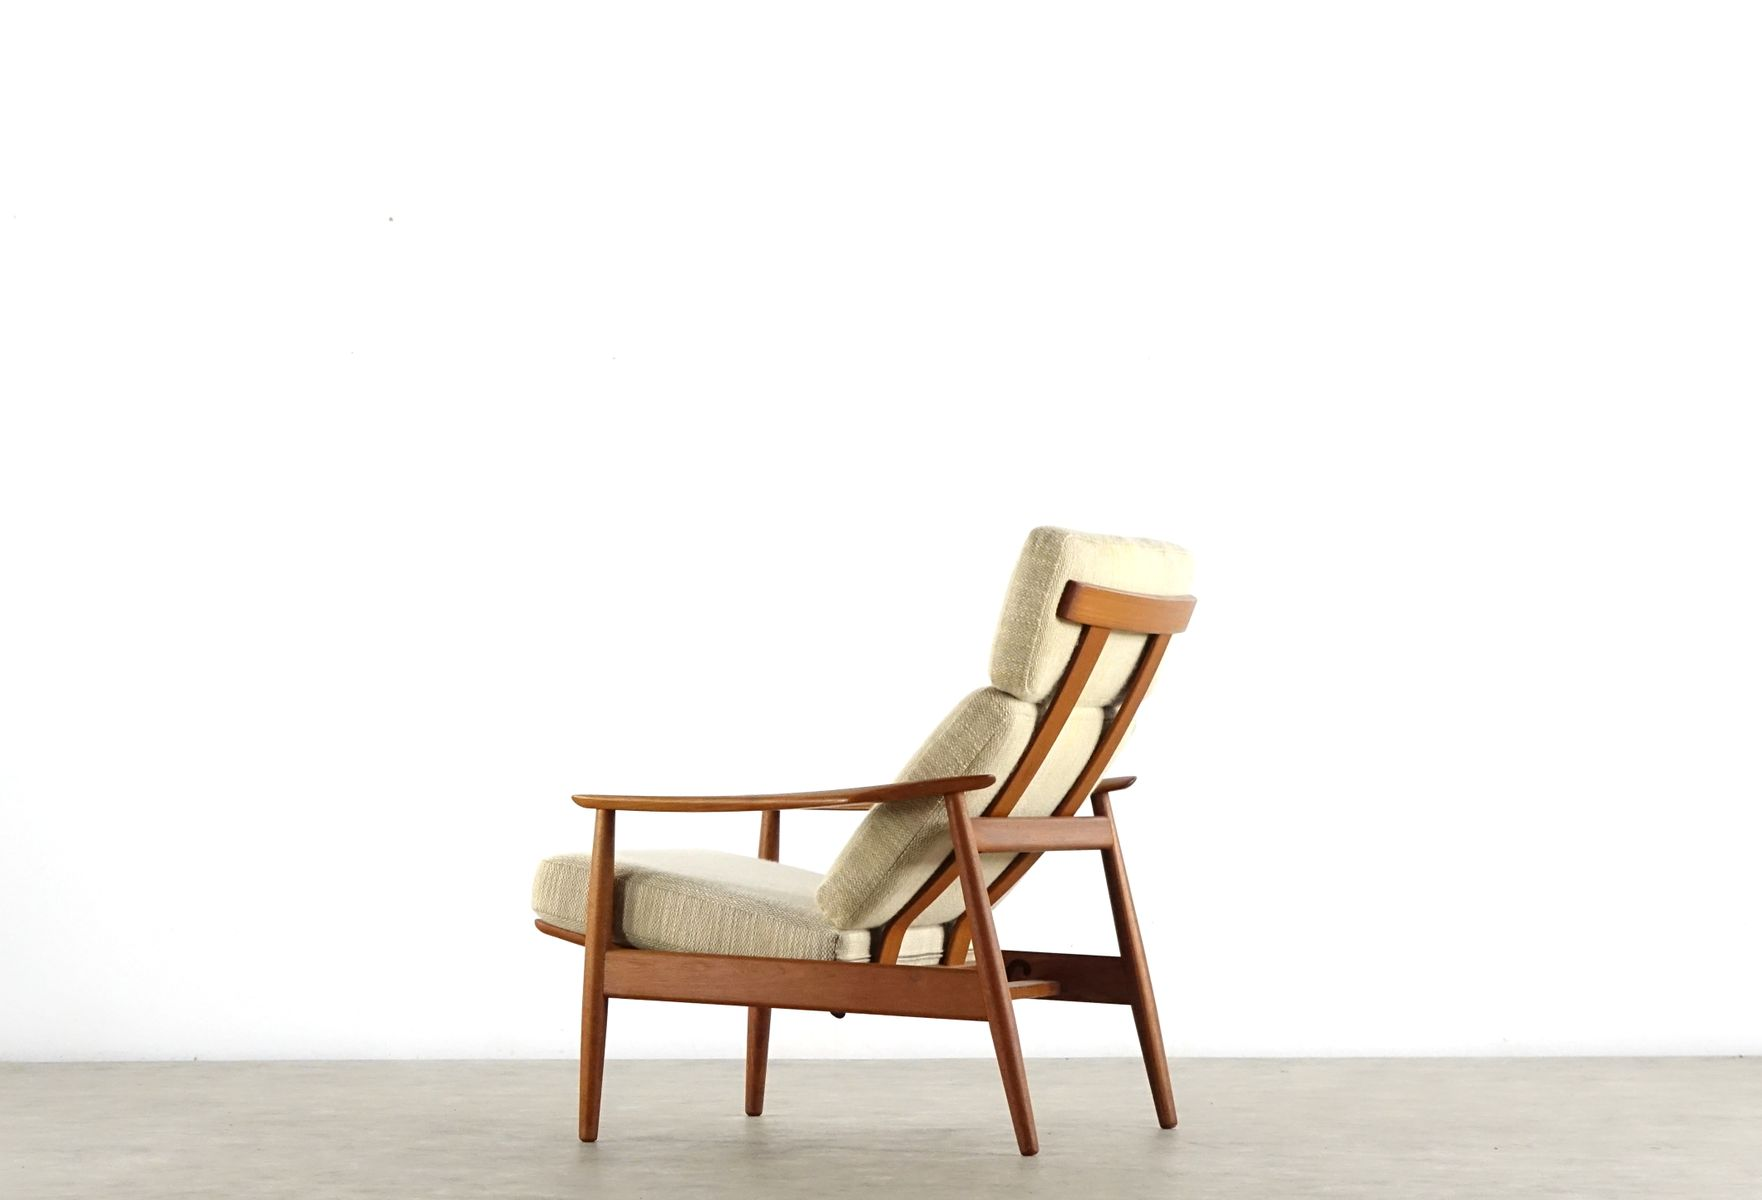 Teak Lounge Chair by Arne Vodder for Cado for sale at Pamono